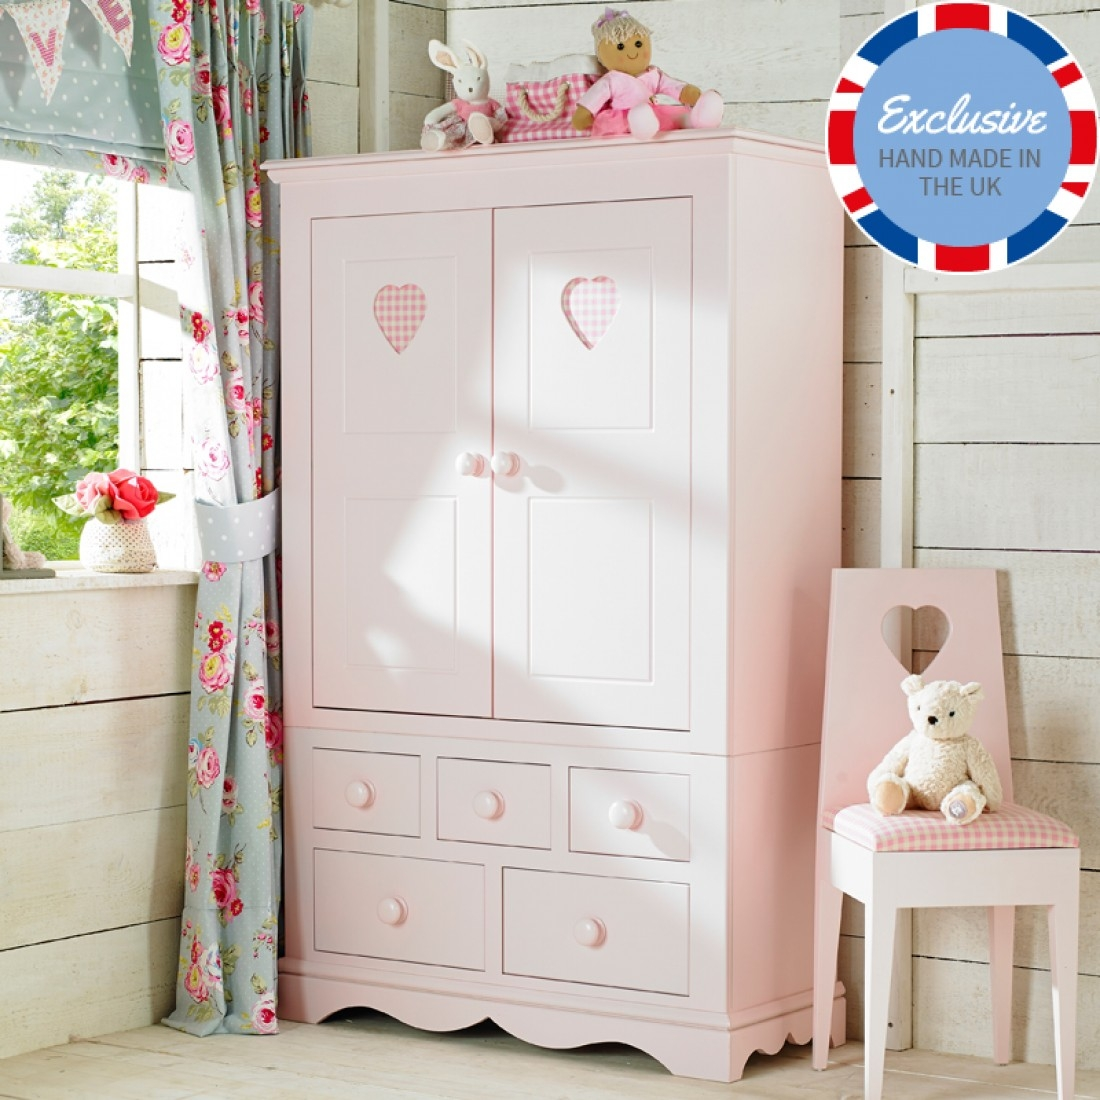 Childrens Wardrobes Childrens Furniture Little Lucy Willow Uk Intended For Childrens Pink Wardrobes (View 6 of 25)